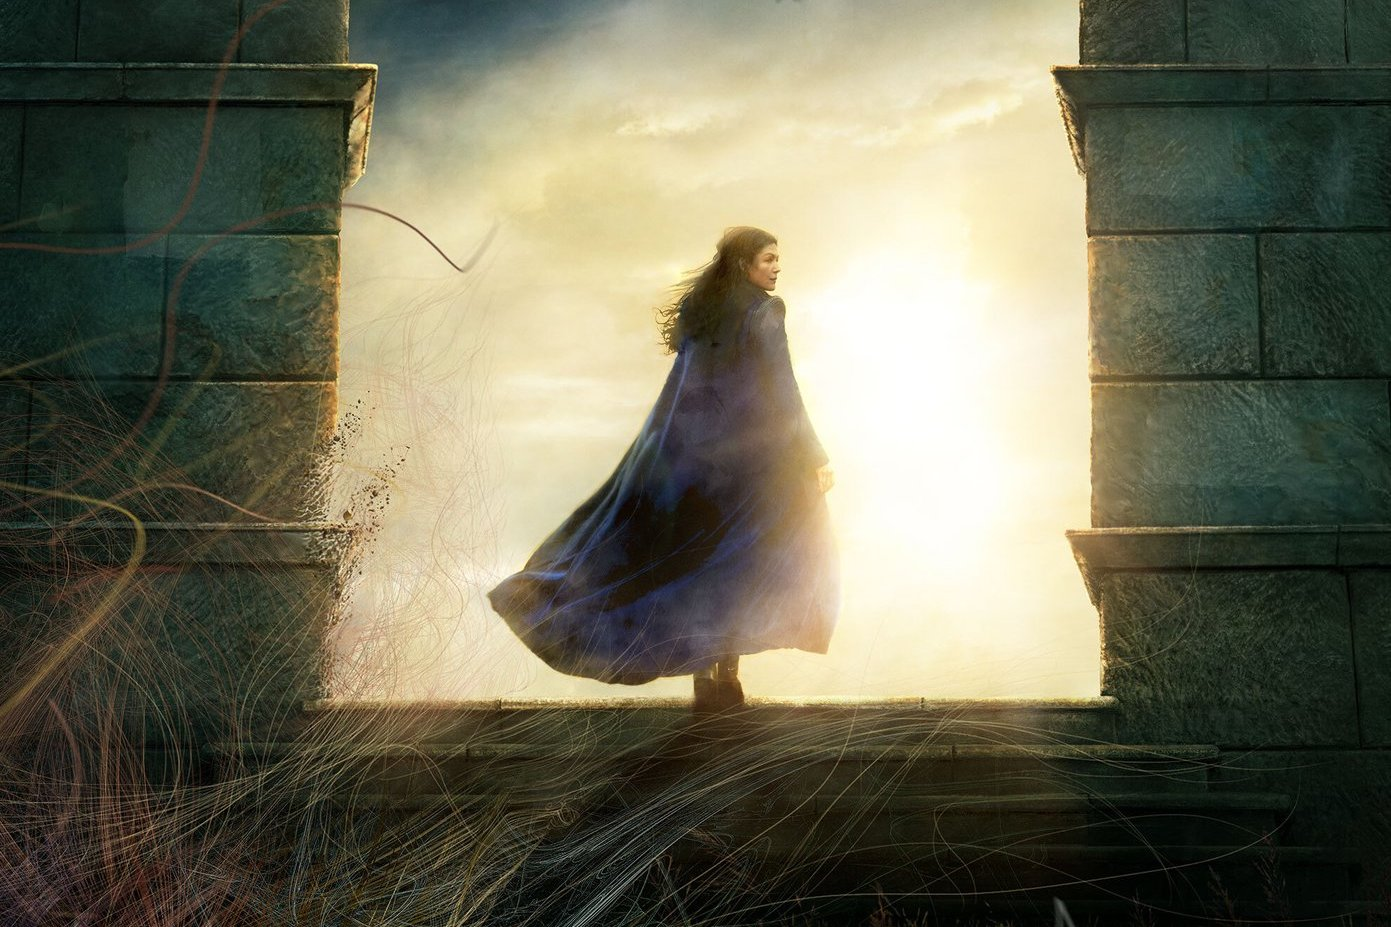 Rosamunde Pike as Moiraine steps through two stone pillars in a poster for Amazon's original series The Wheel of Time.